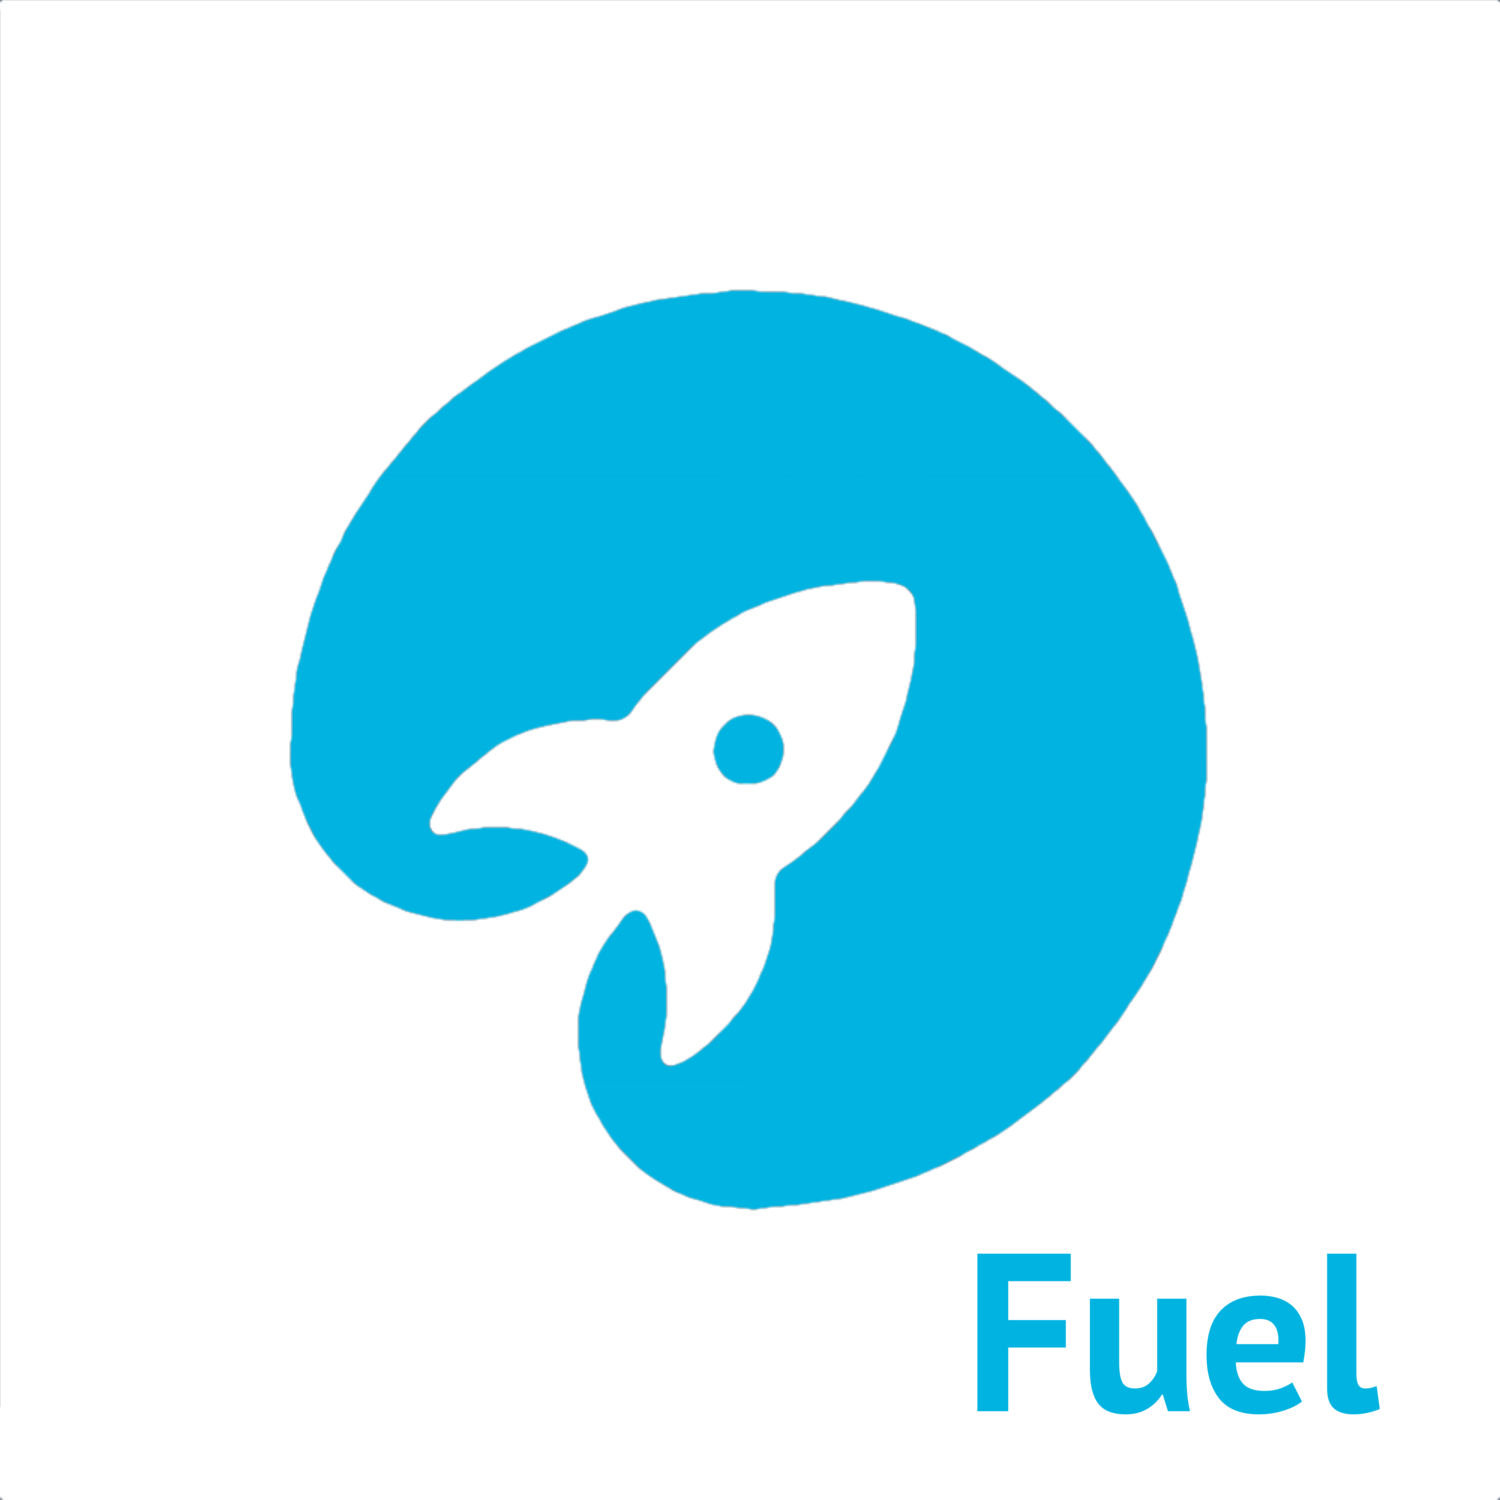 Fit Body Fuel